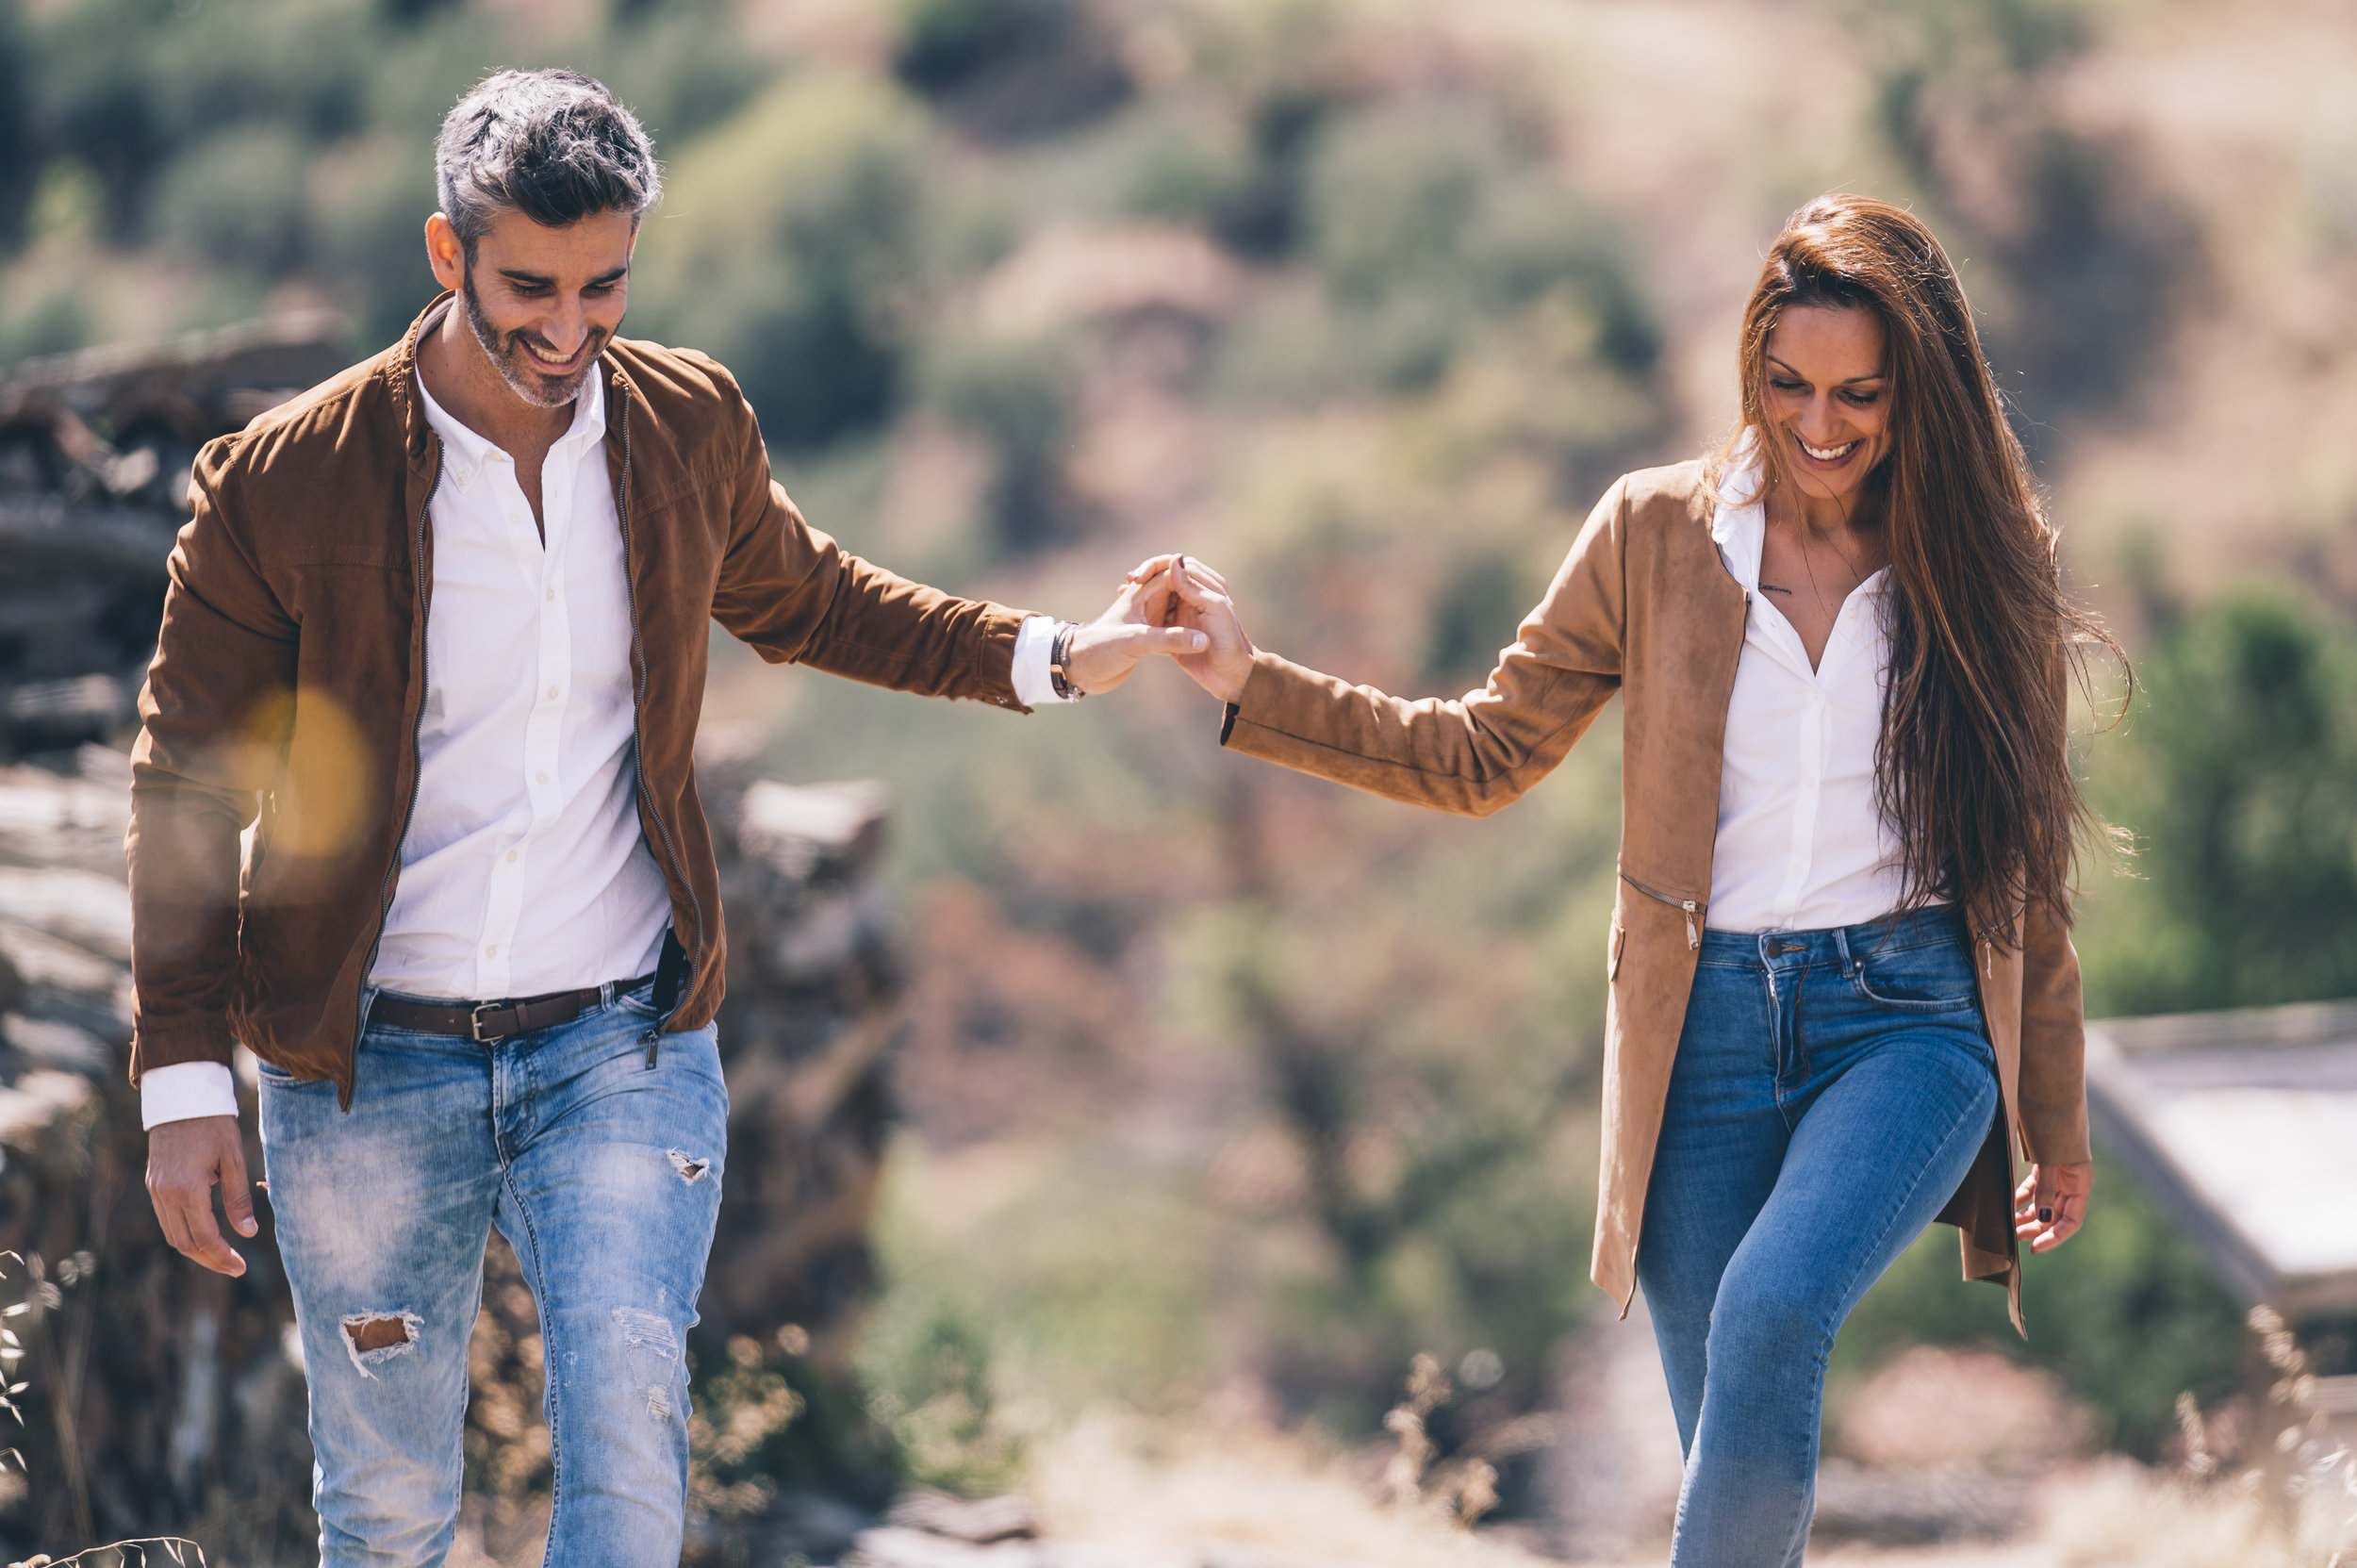 Matchmaking companies cape may new jersey city